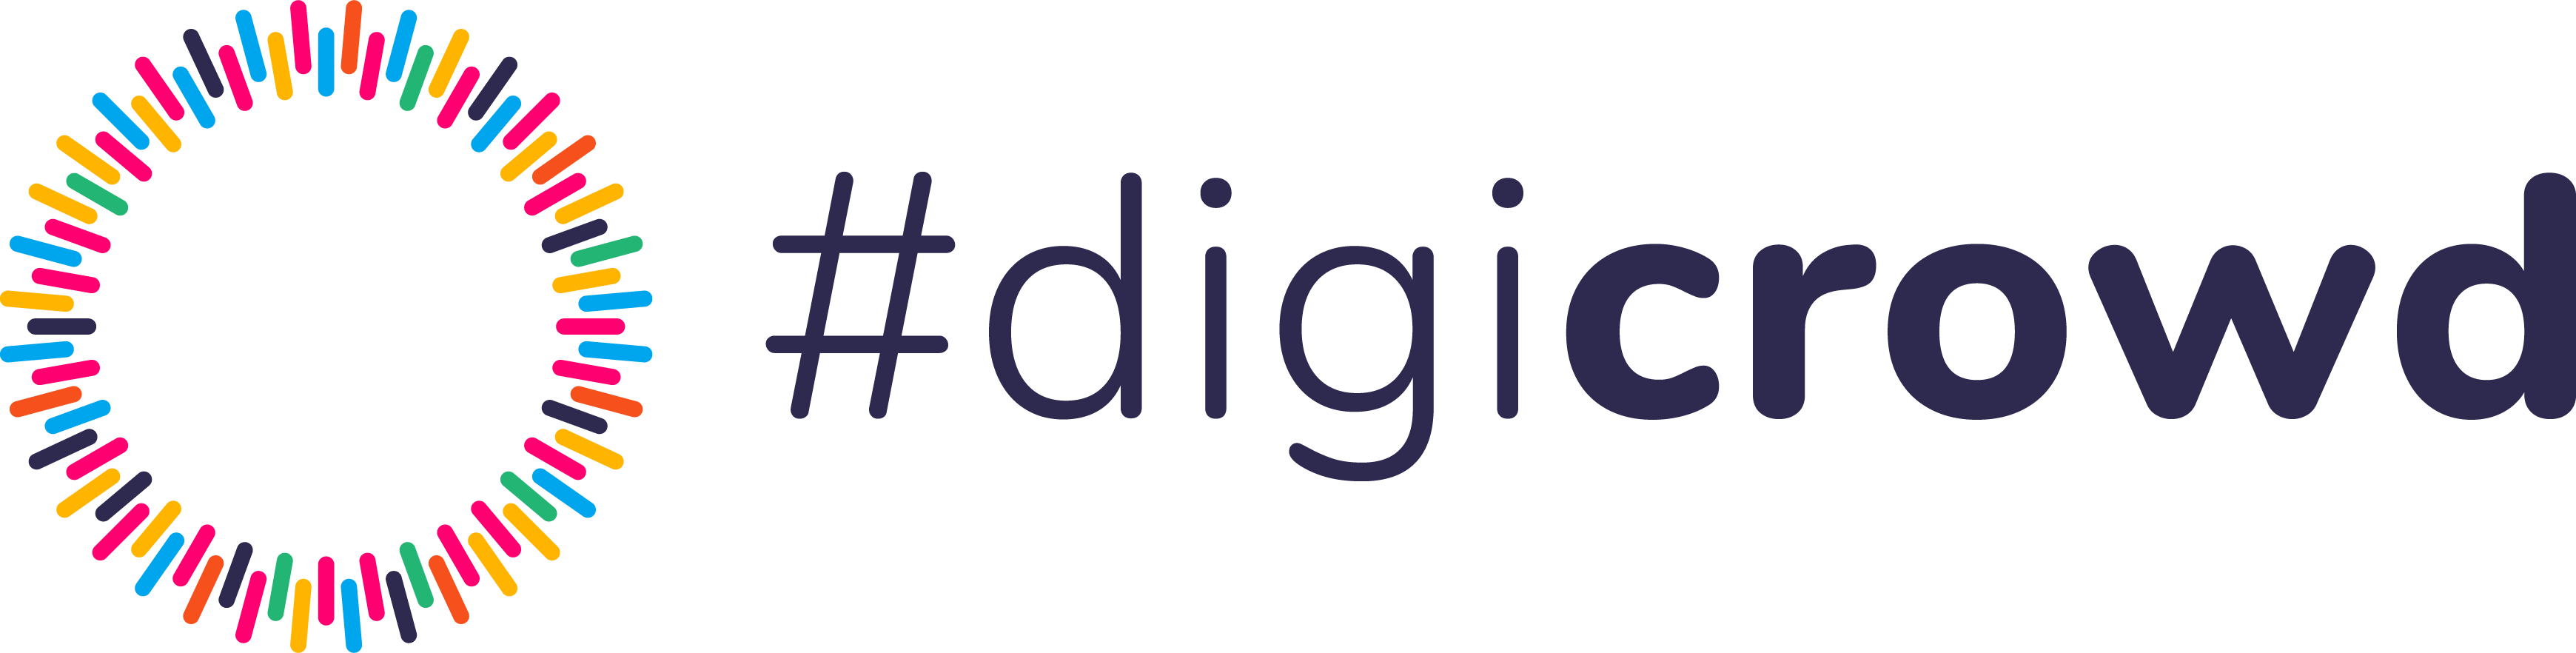 Digicrowd